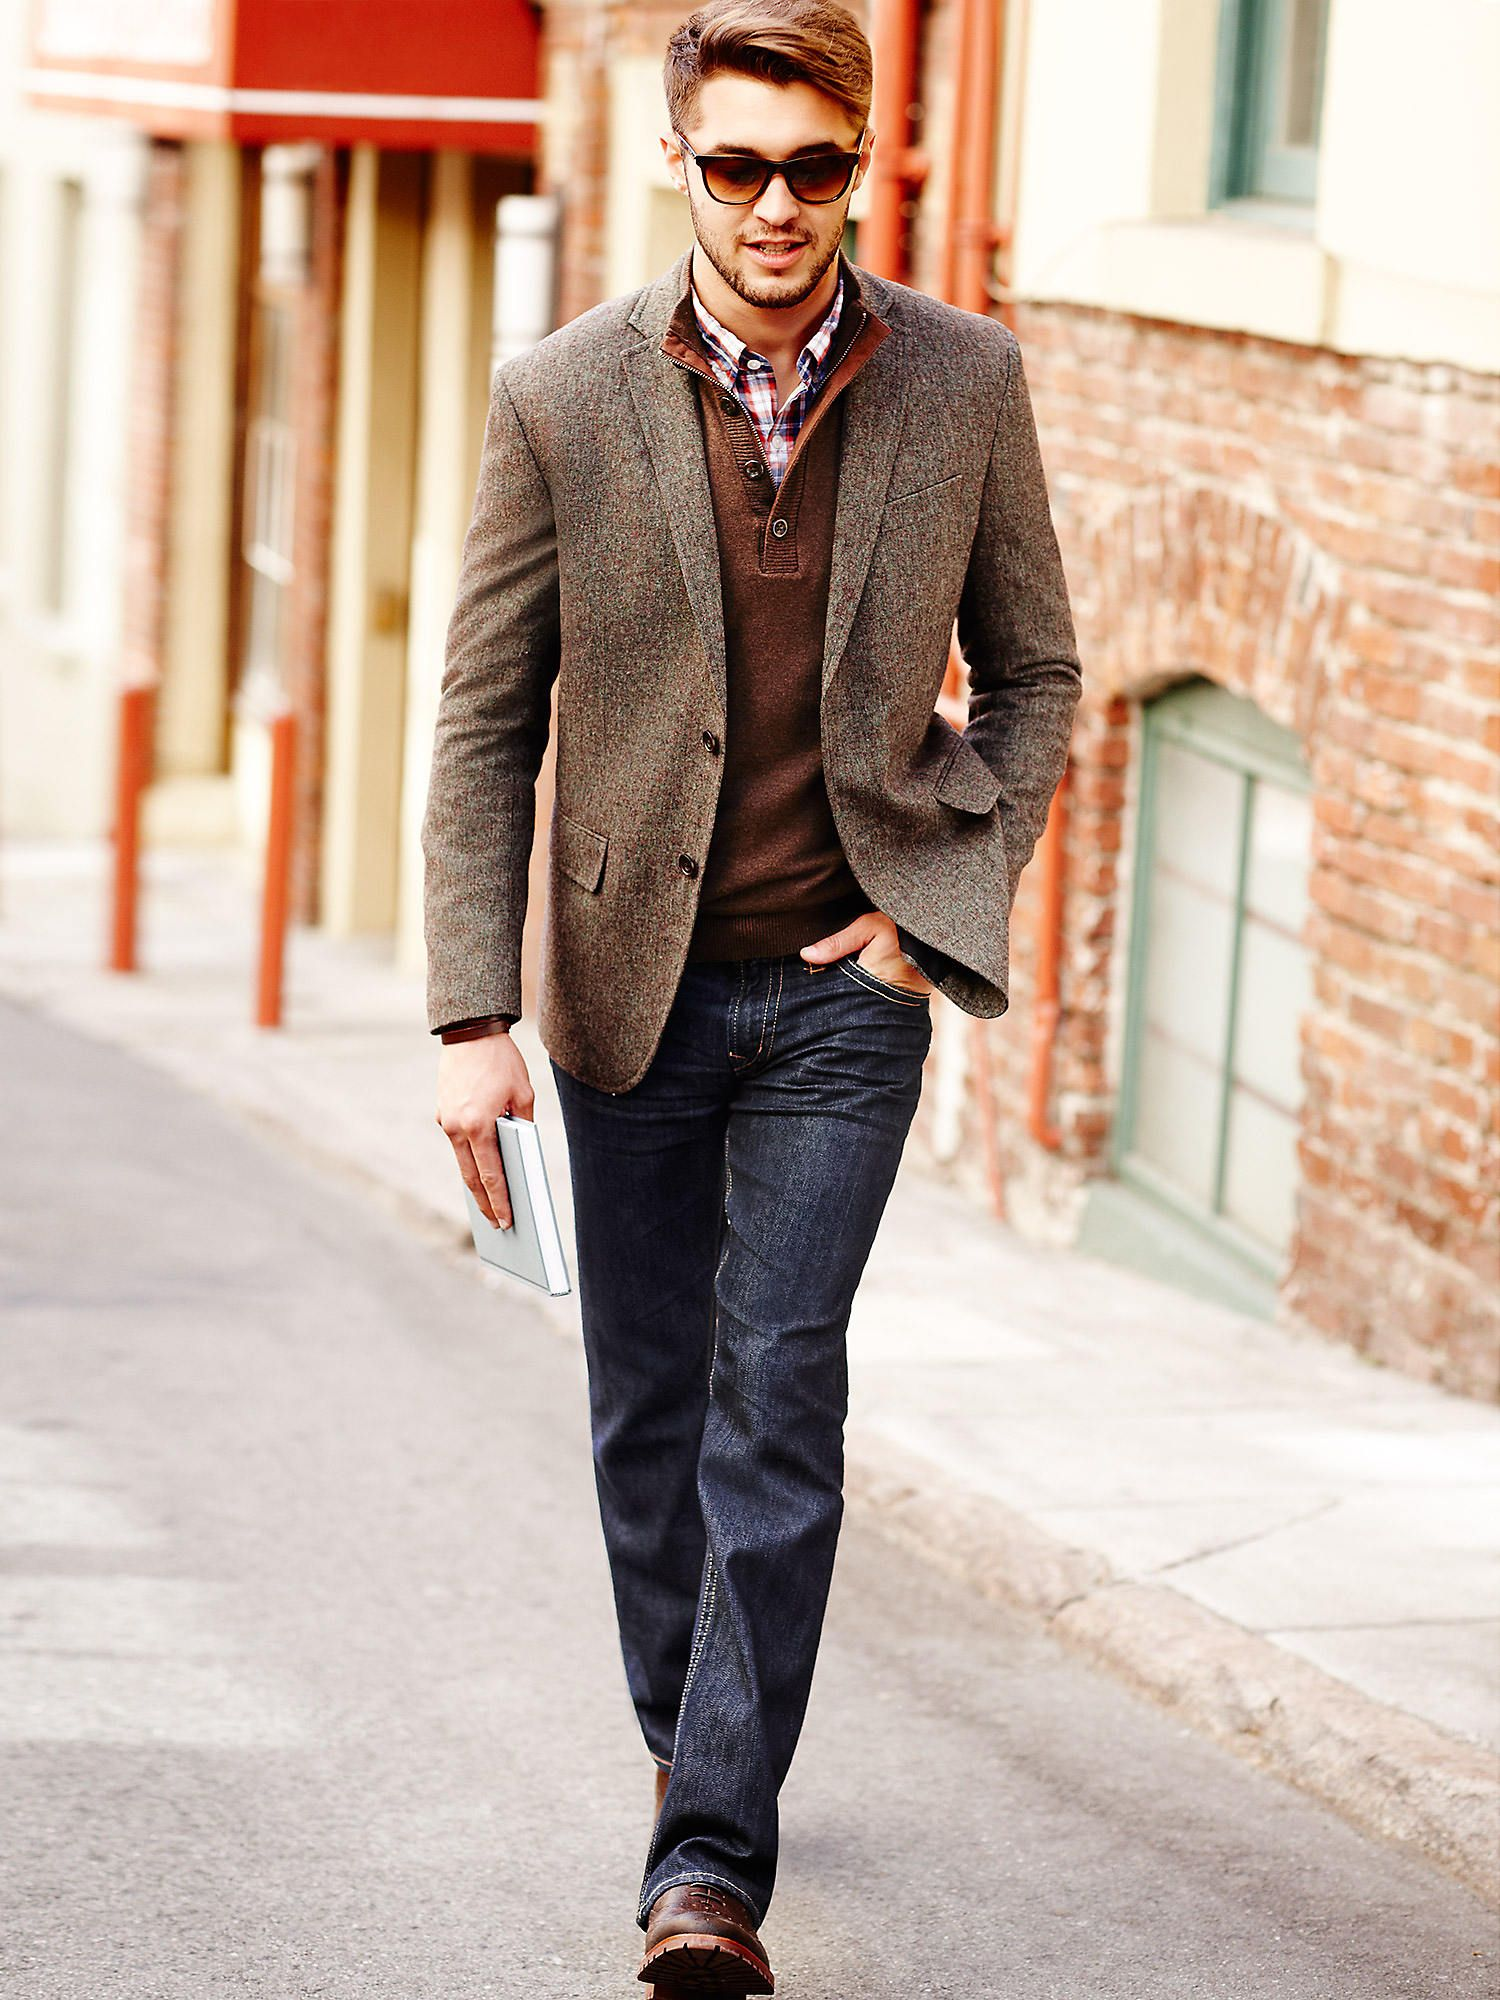 City Casual Weekend Casual Men's Wearhouse (With